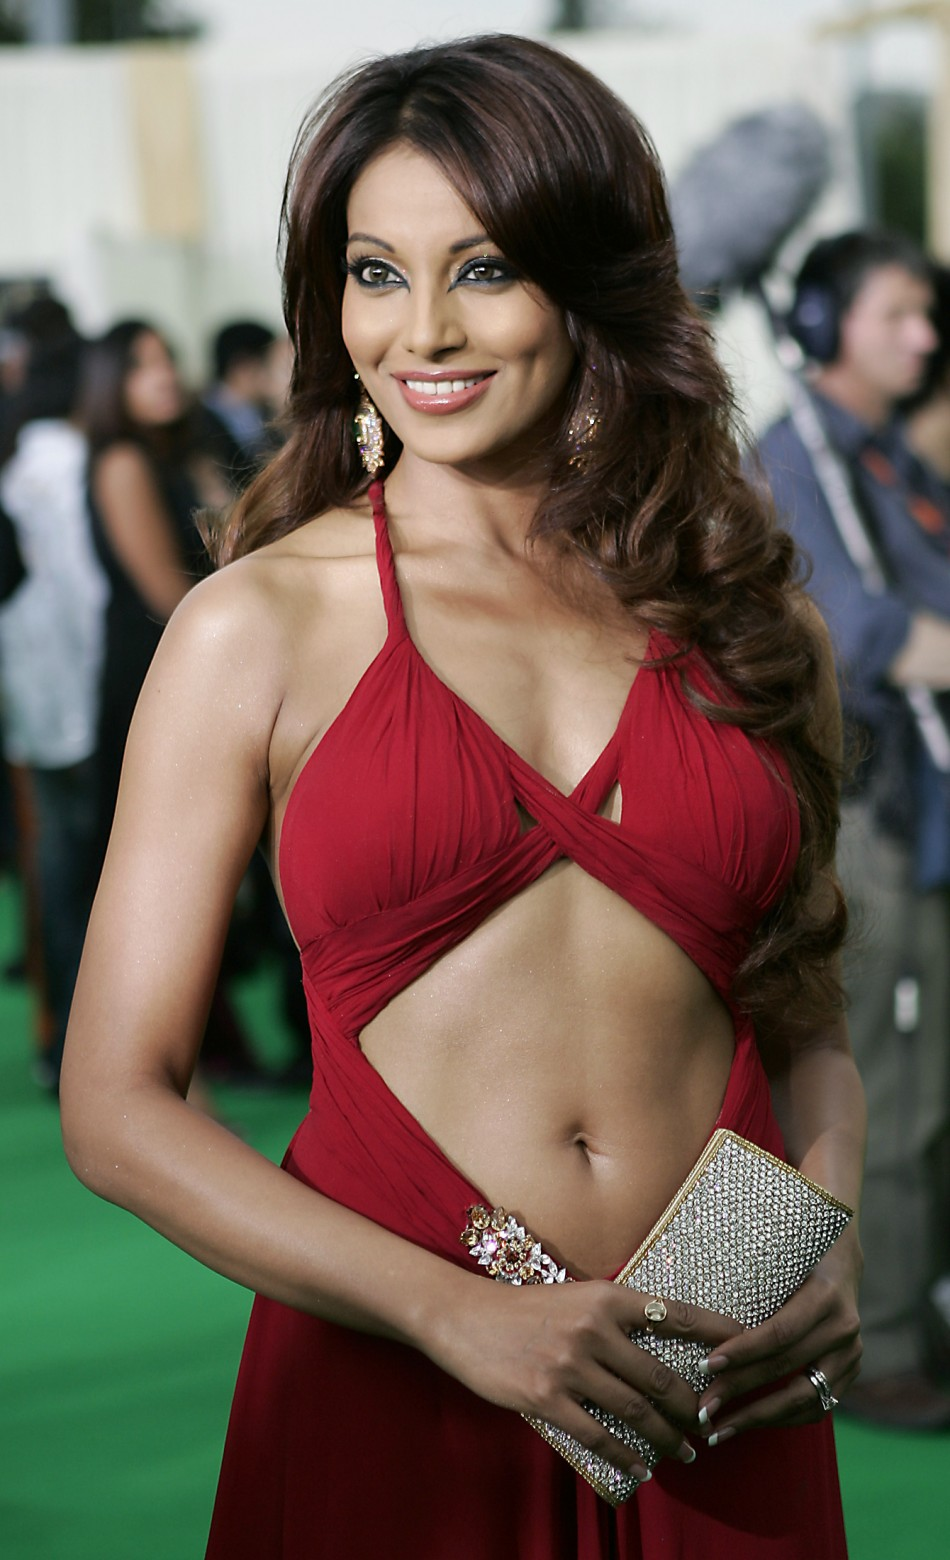 Cannes Film Festival 2012 Aishwarya Rai Bachchan And Other Bollywood Celebrities To Walk The